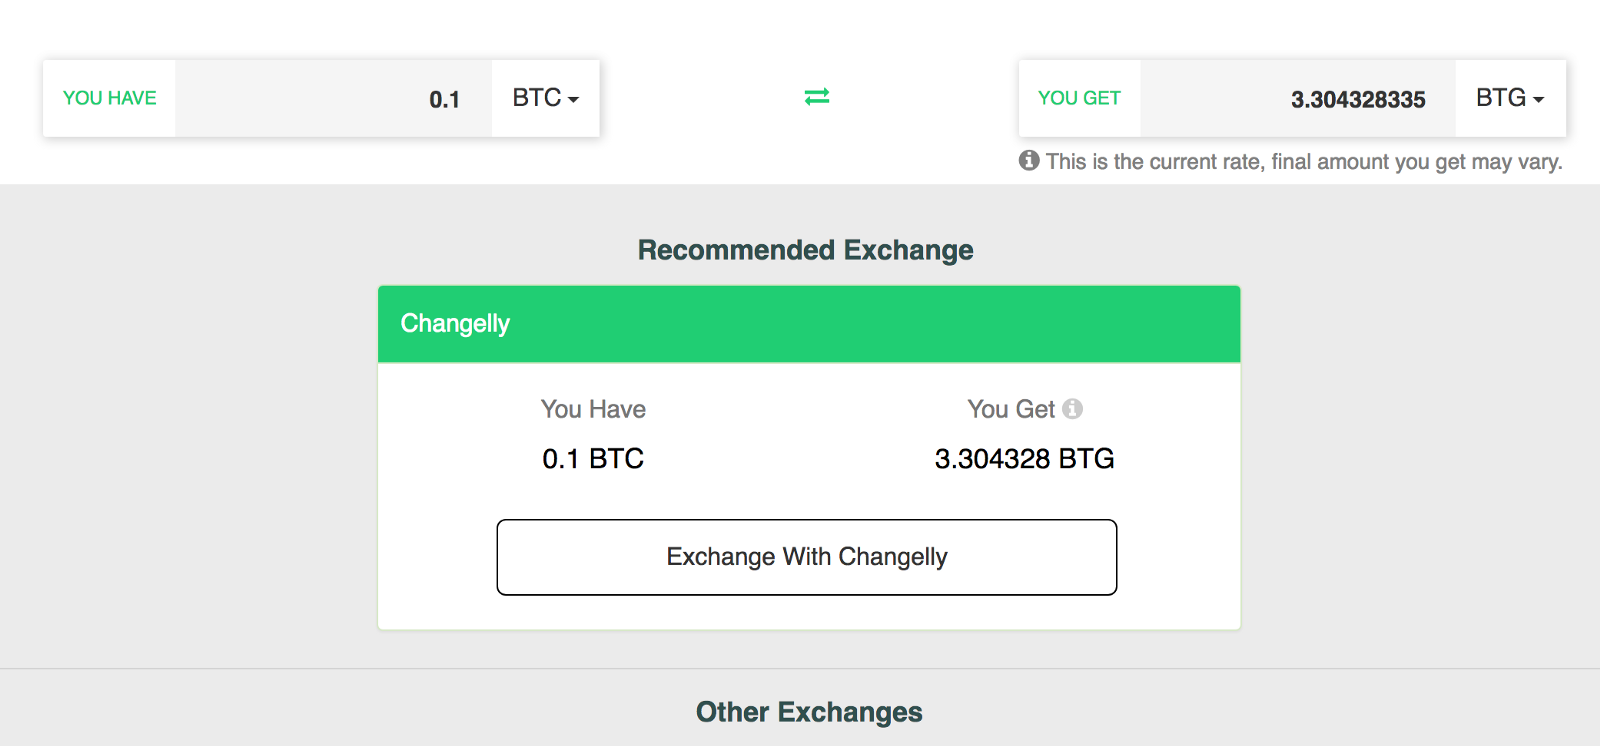 How to buy bitcoin gold btg from coinswitch newbium provide your bitcoin gold btg wallet address you will receive your btg coins in that wallet after the exchange completes please double check the address ccuart Images